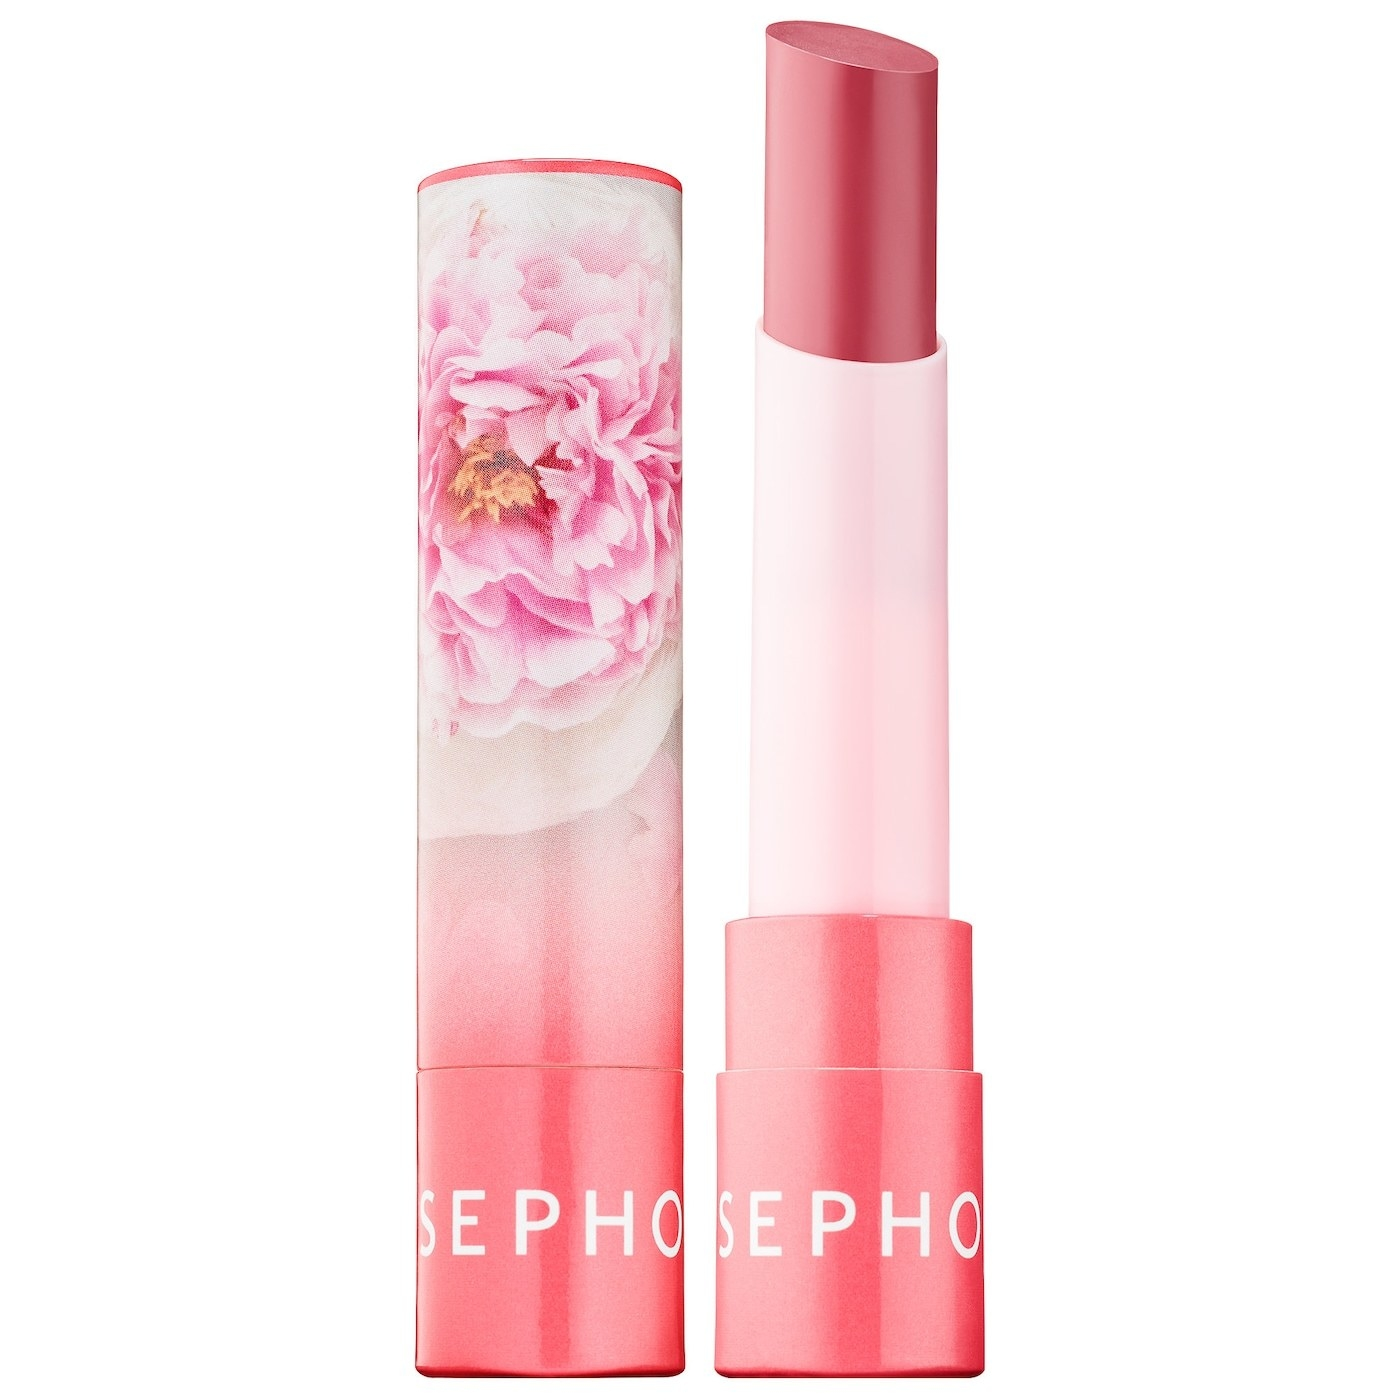 A pink lip balm with flowers